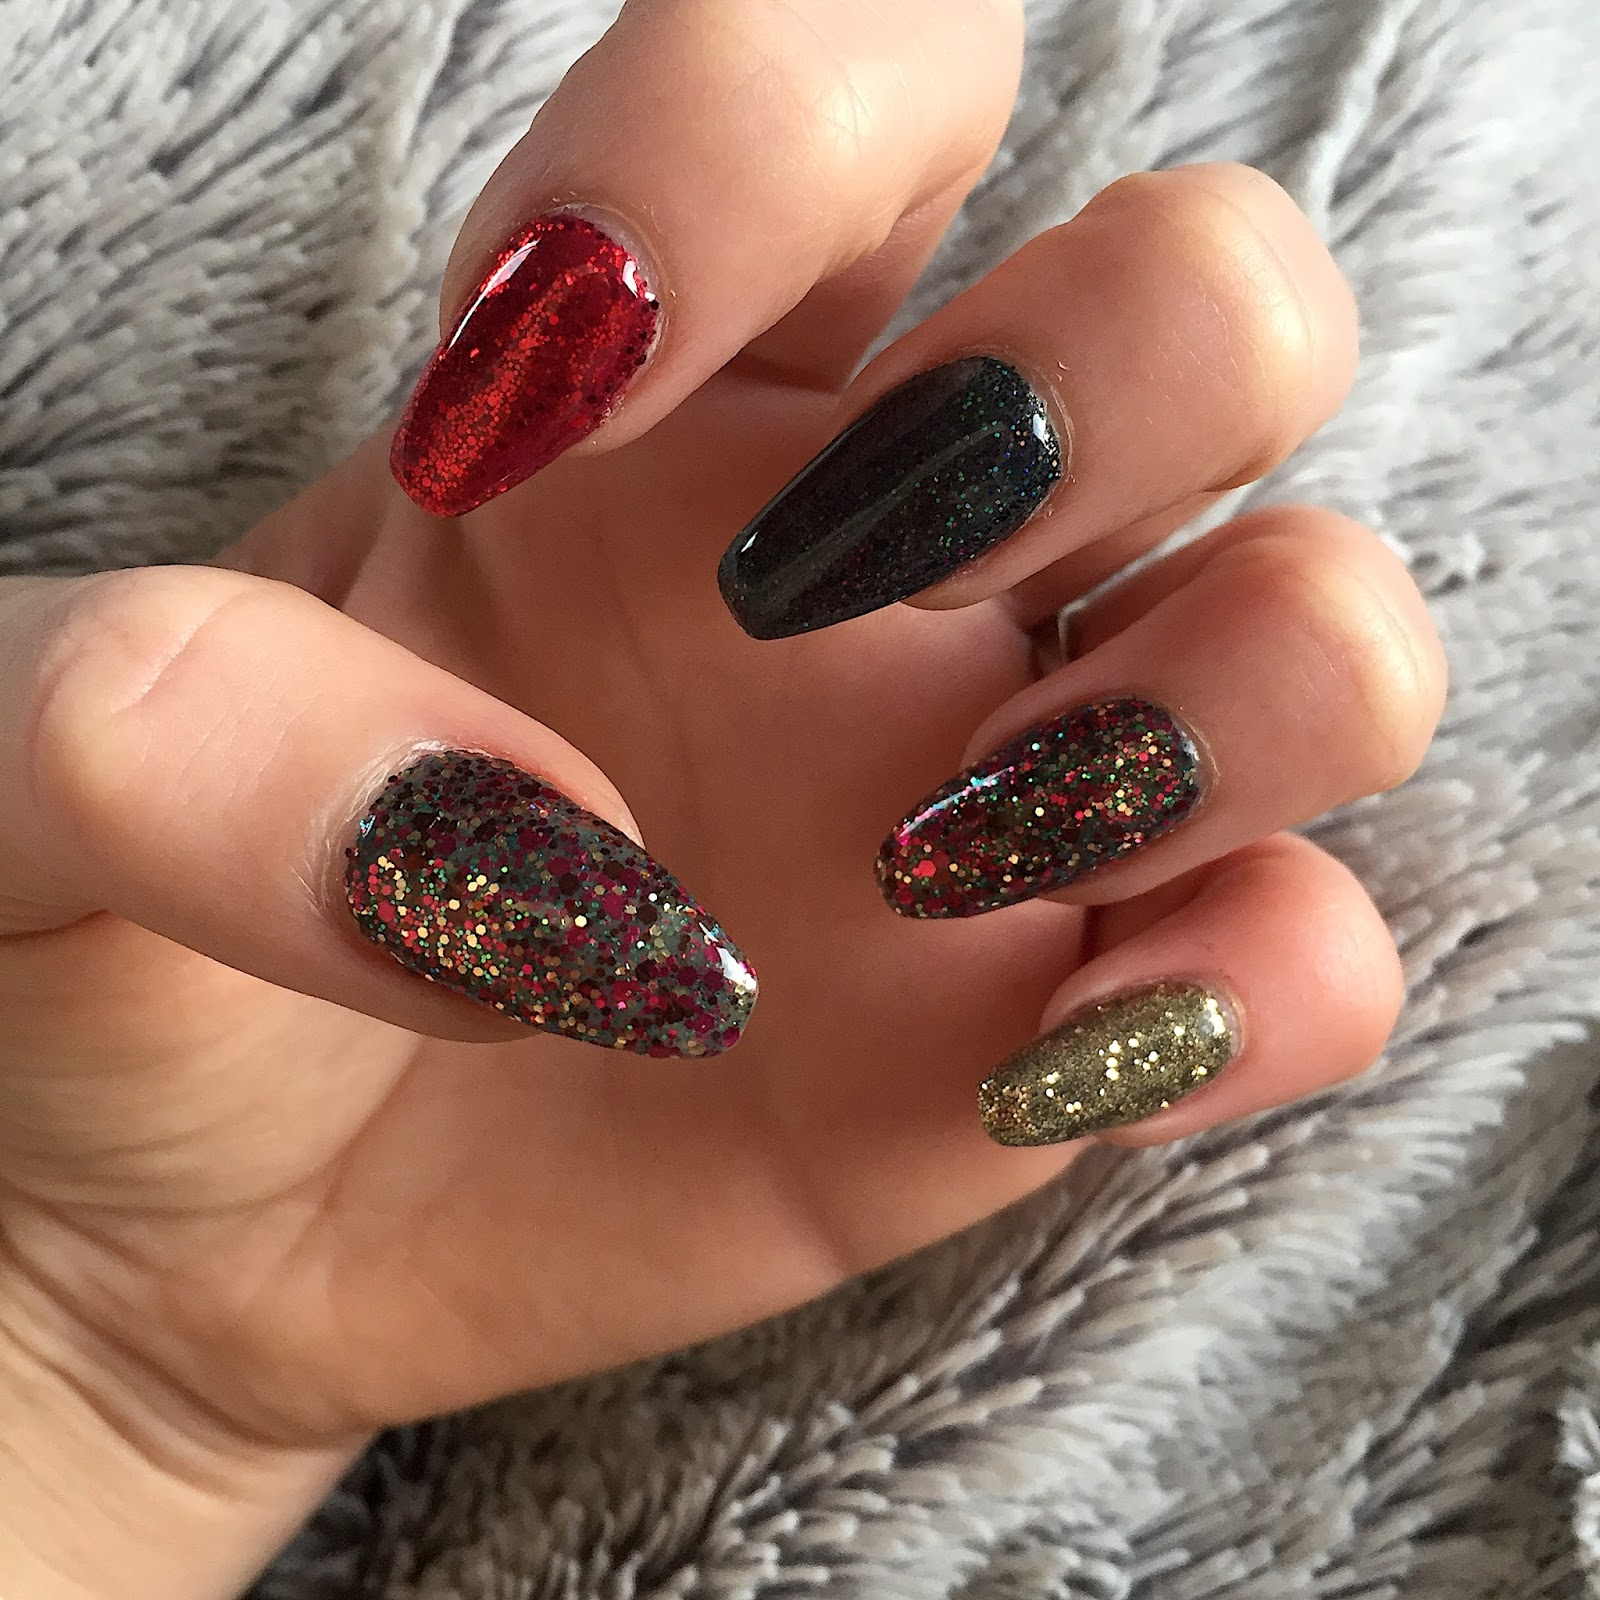 Christmas Nails With Glitter: NOTD: Christmas Glitter Nails